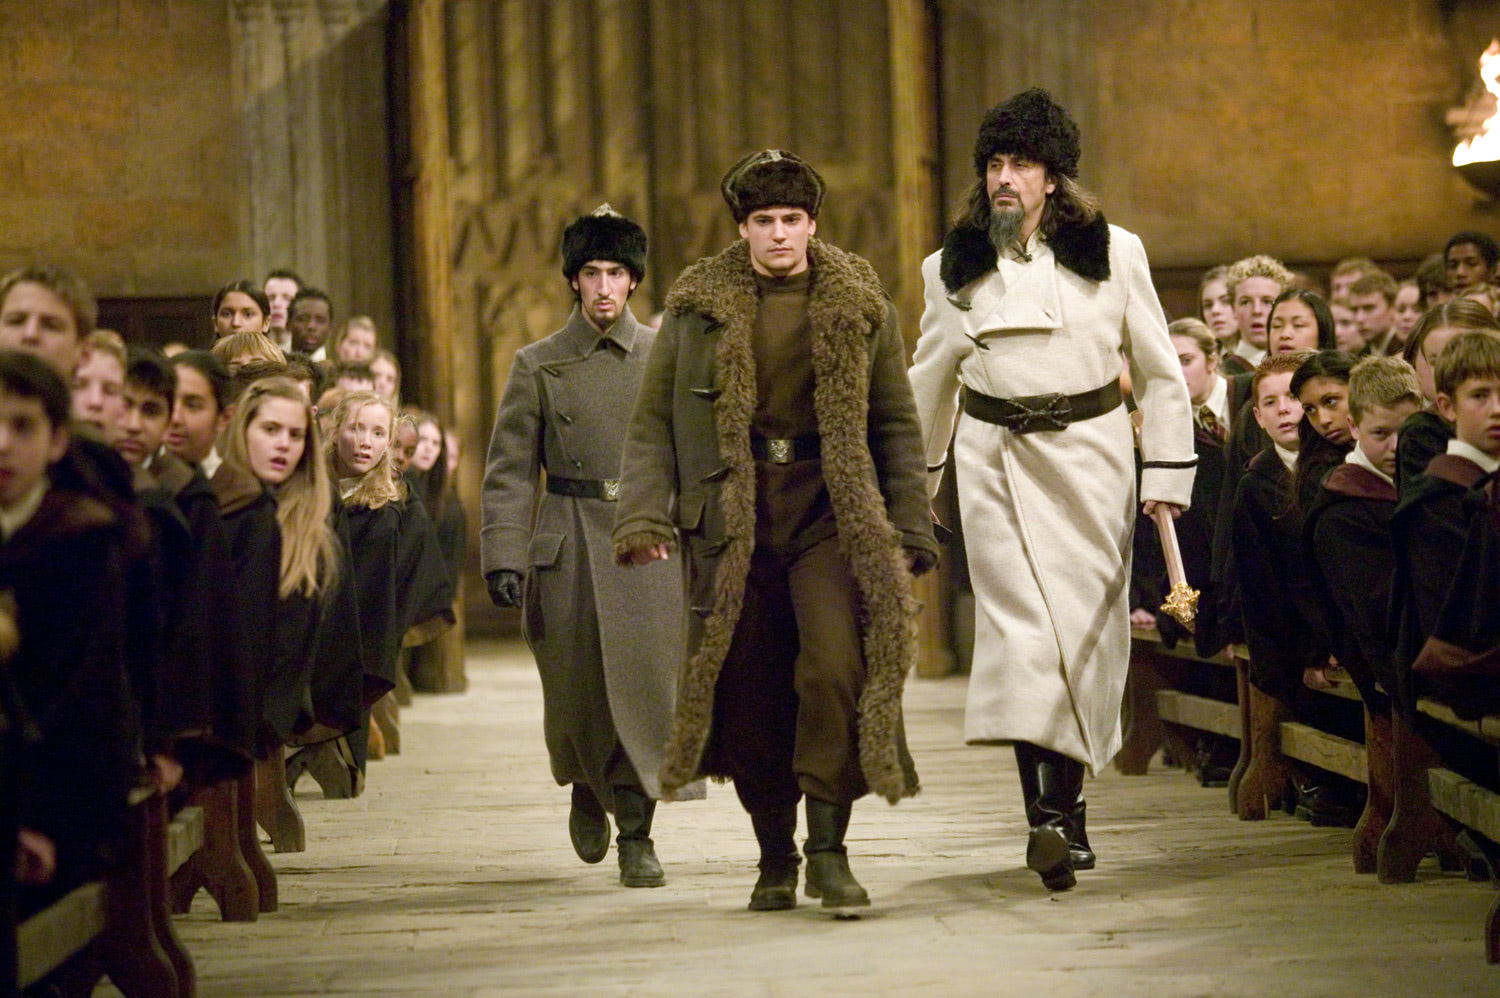 Krum and Karkaroff arrive at Hogwarts